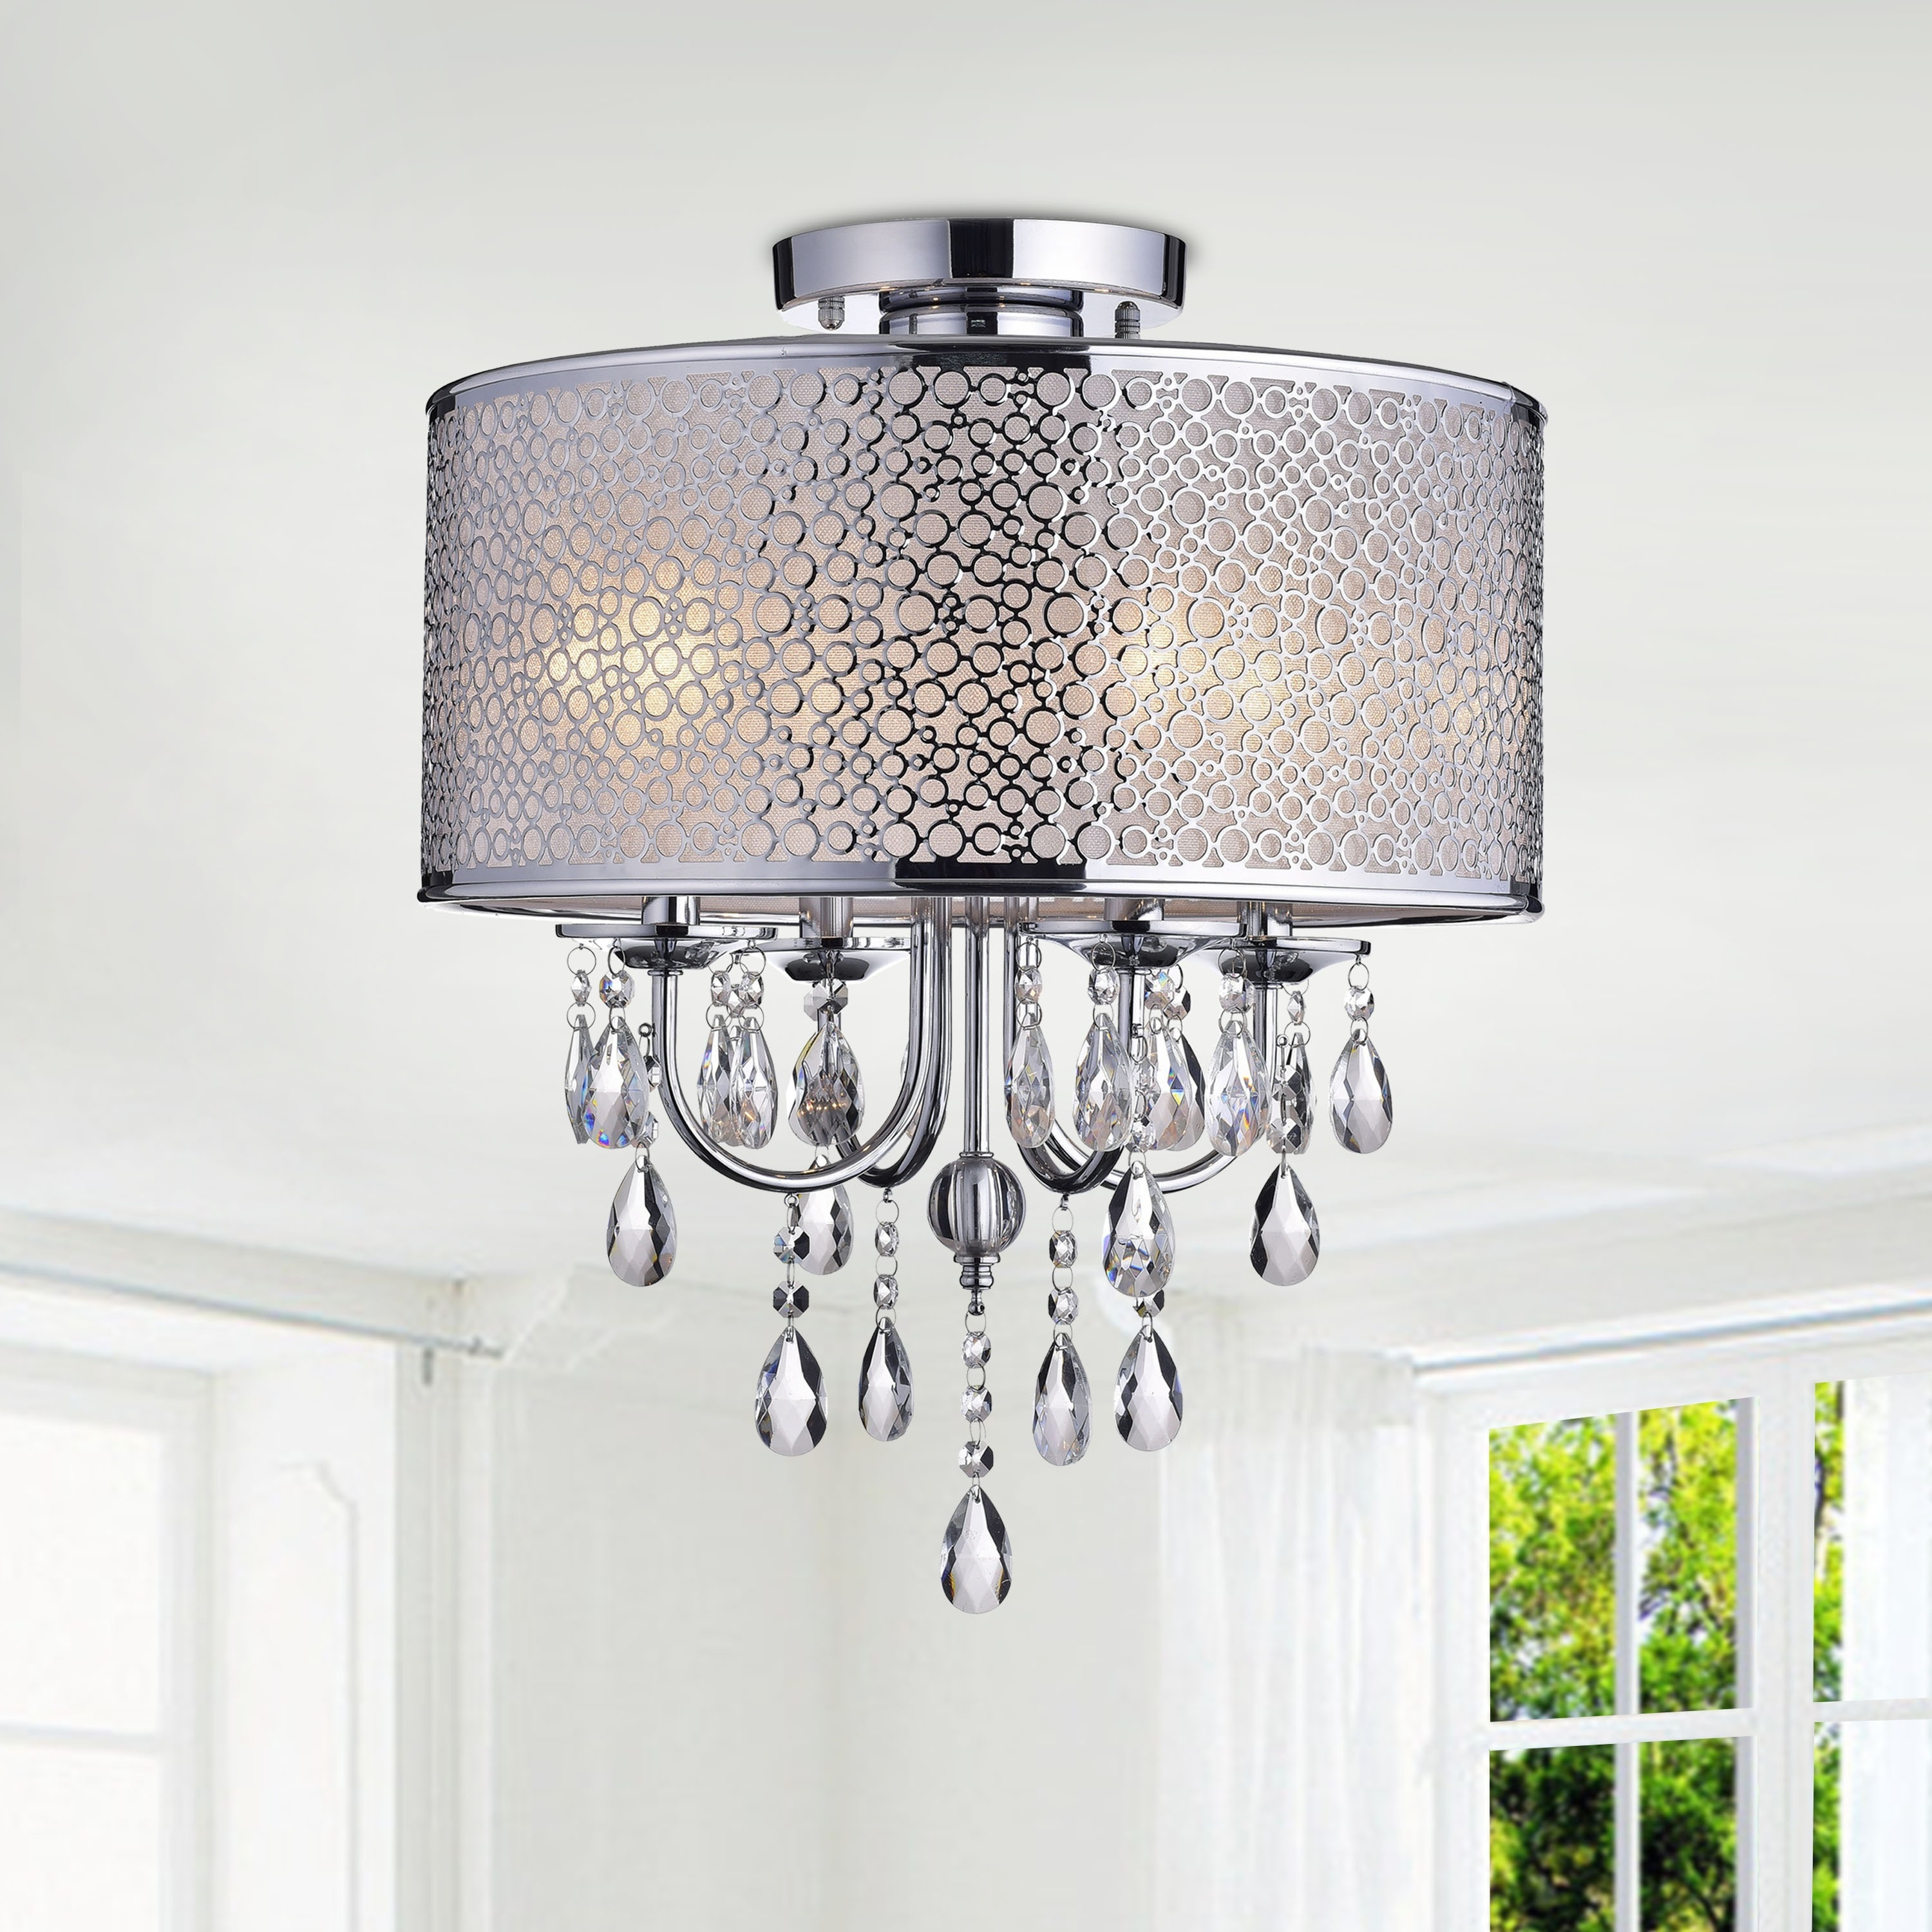 The Lighting Store Amalia Indoor 4-light Chrome Metal Drum Shade Crystal Flush Mount Chandelier